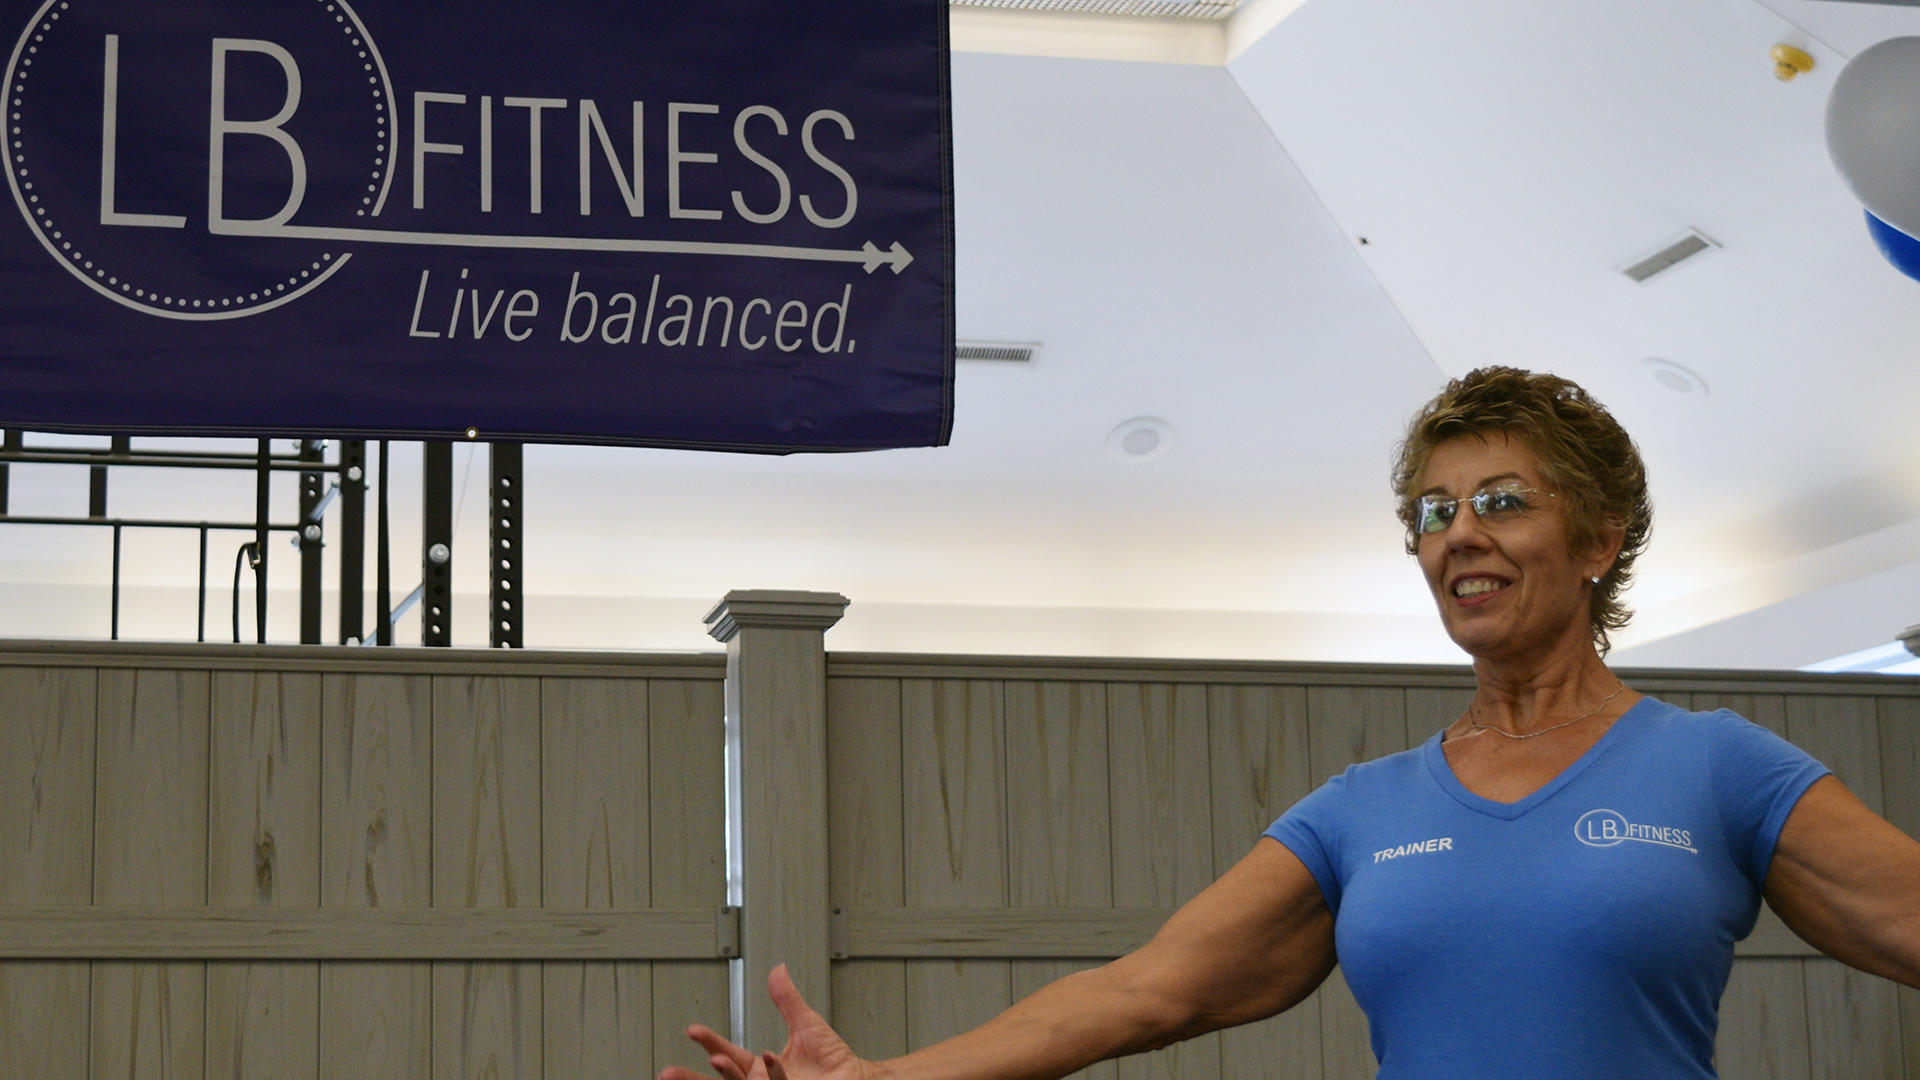 Personal training grand opening